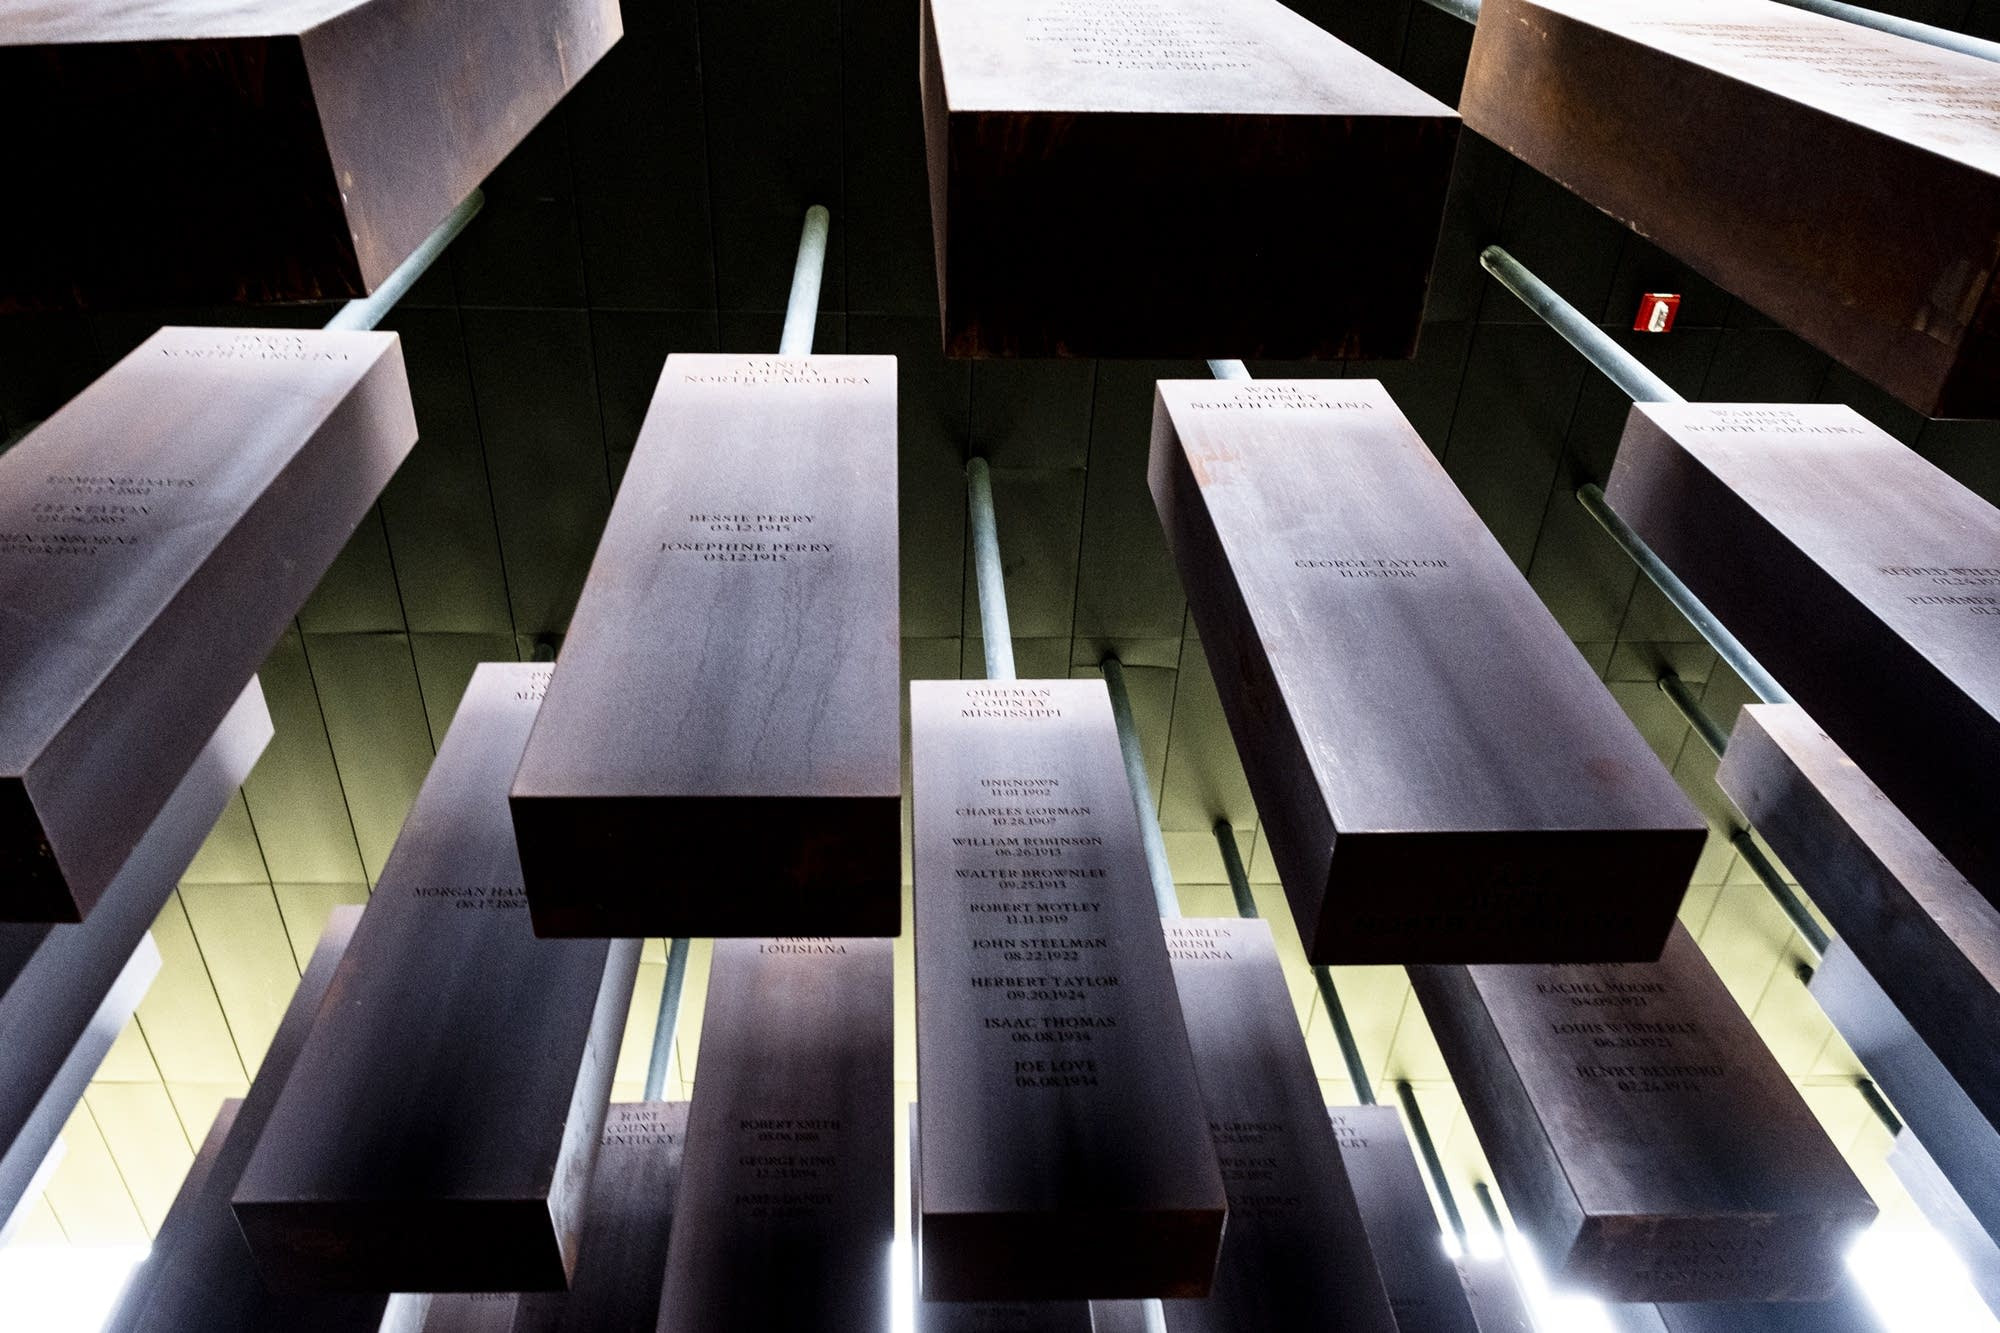 This is the National Memorial of Peace and Justice in Montgomery, Alabama. This is the pillar display to memorialize over 4, 000 lynchings of Black people.